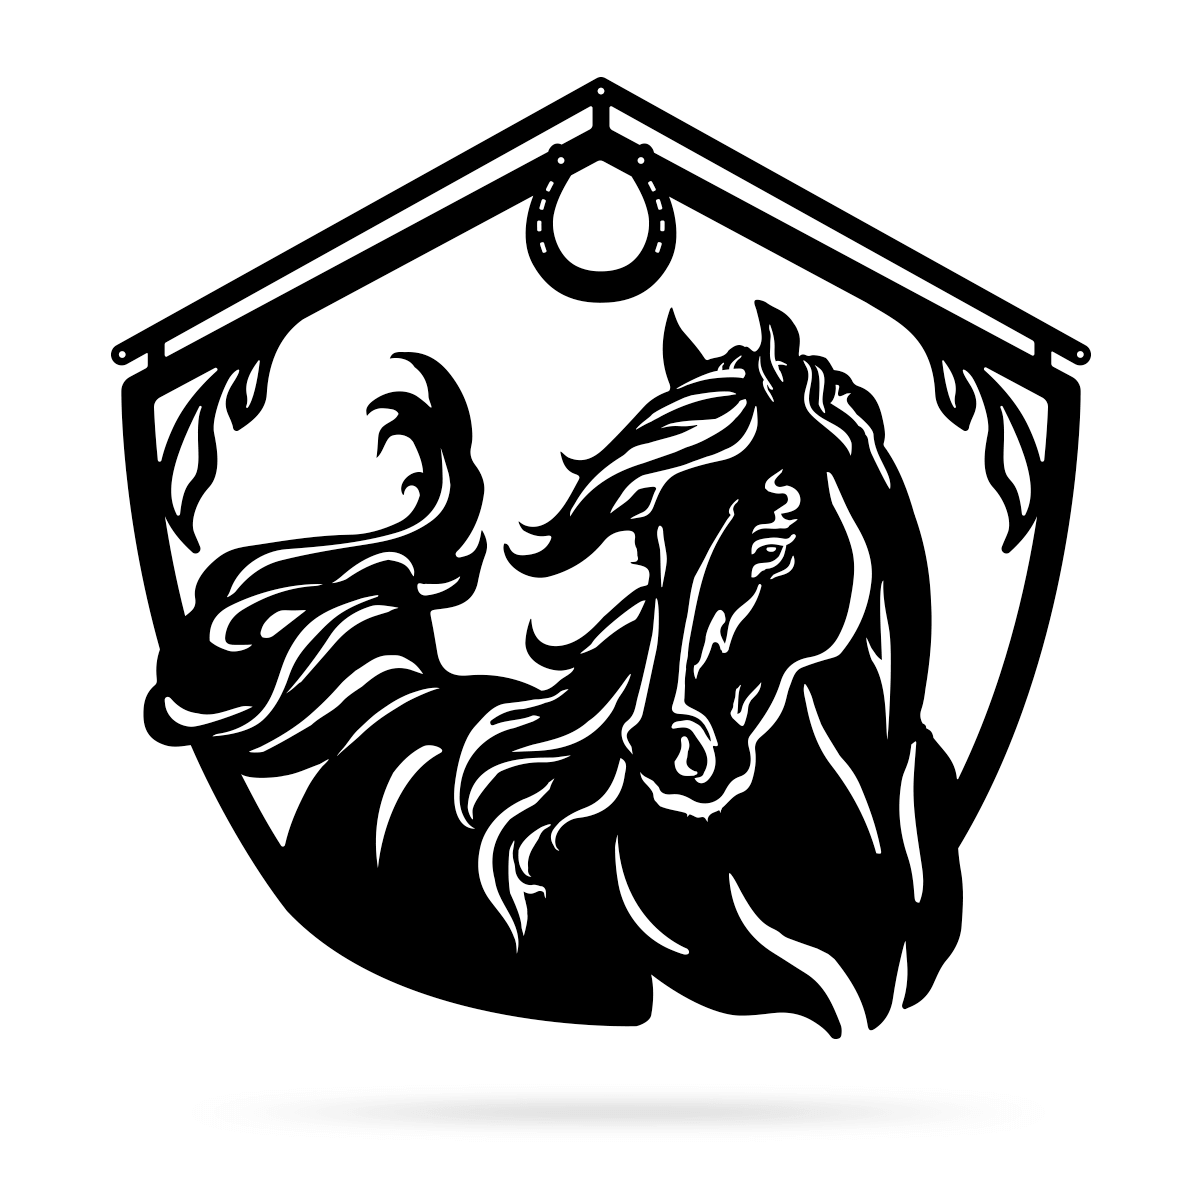 Decorate Your Ranch With Our Realsteel Center Horse And Barn Sign